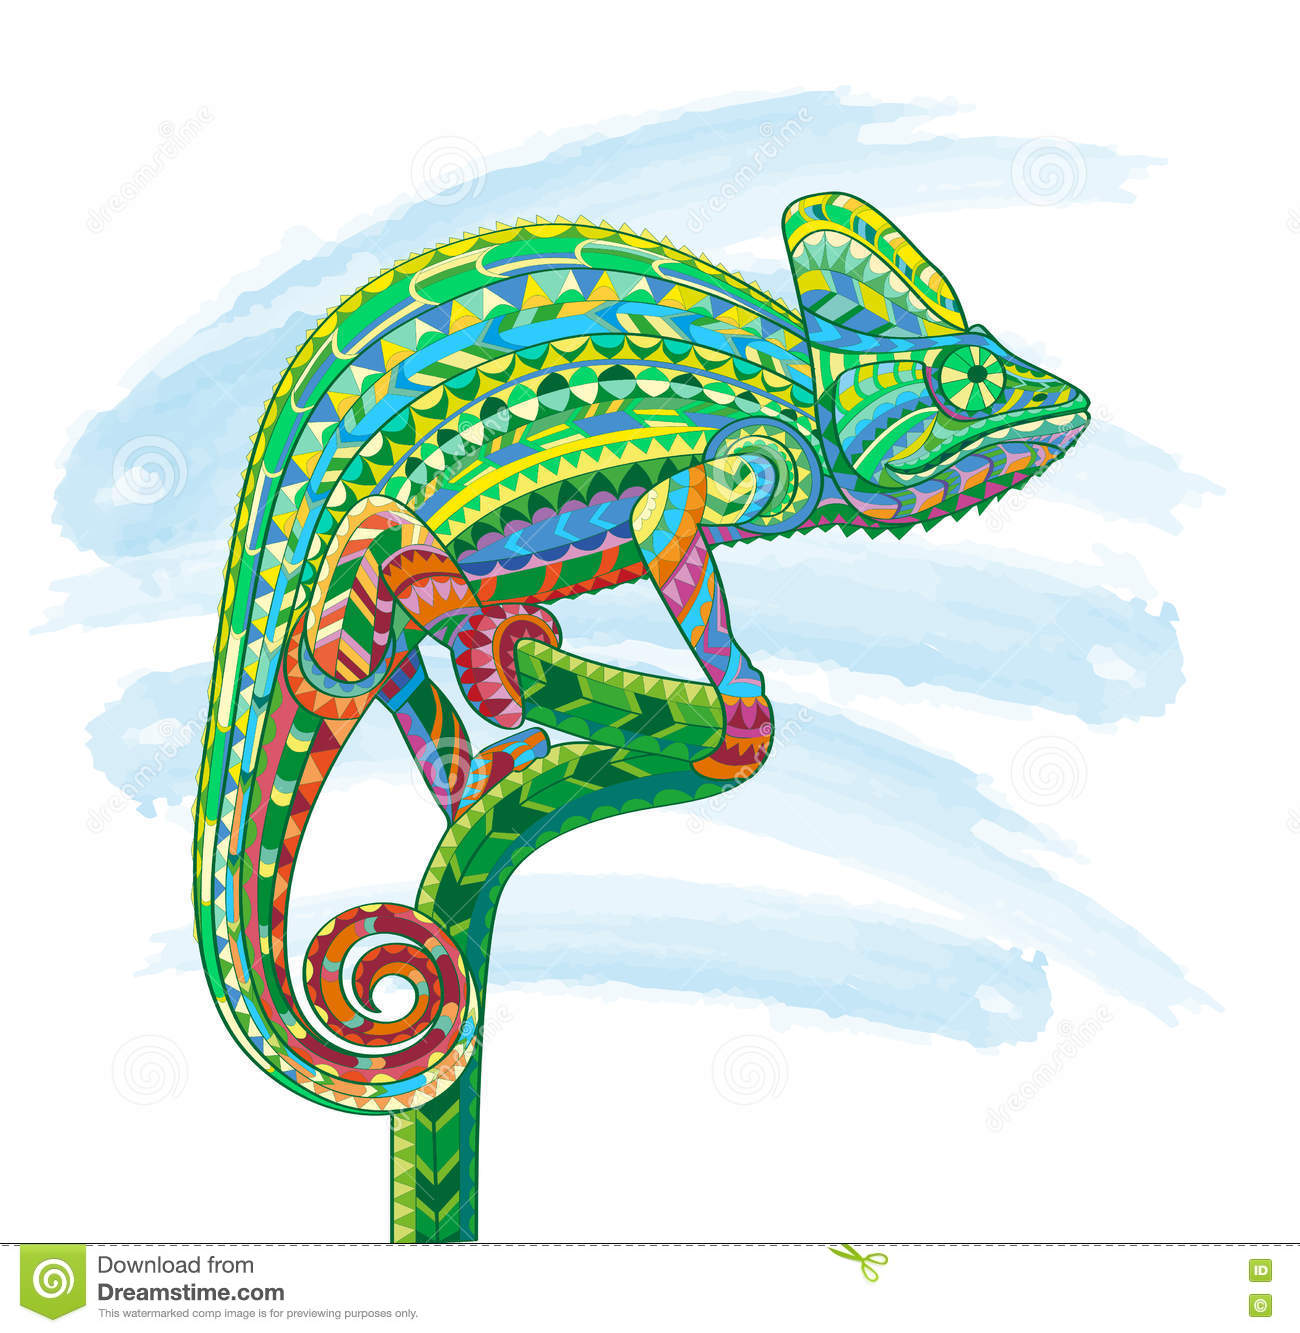 Hand Drawn Colored Doodle Outline Chameleon Illustration